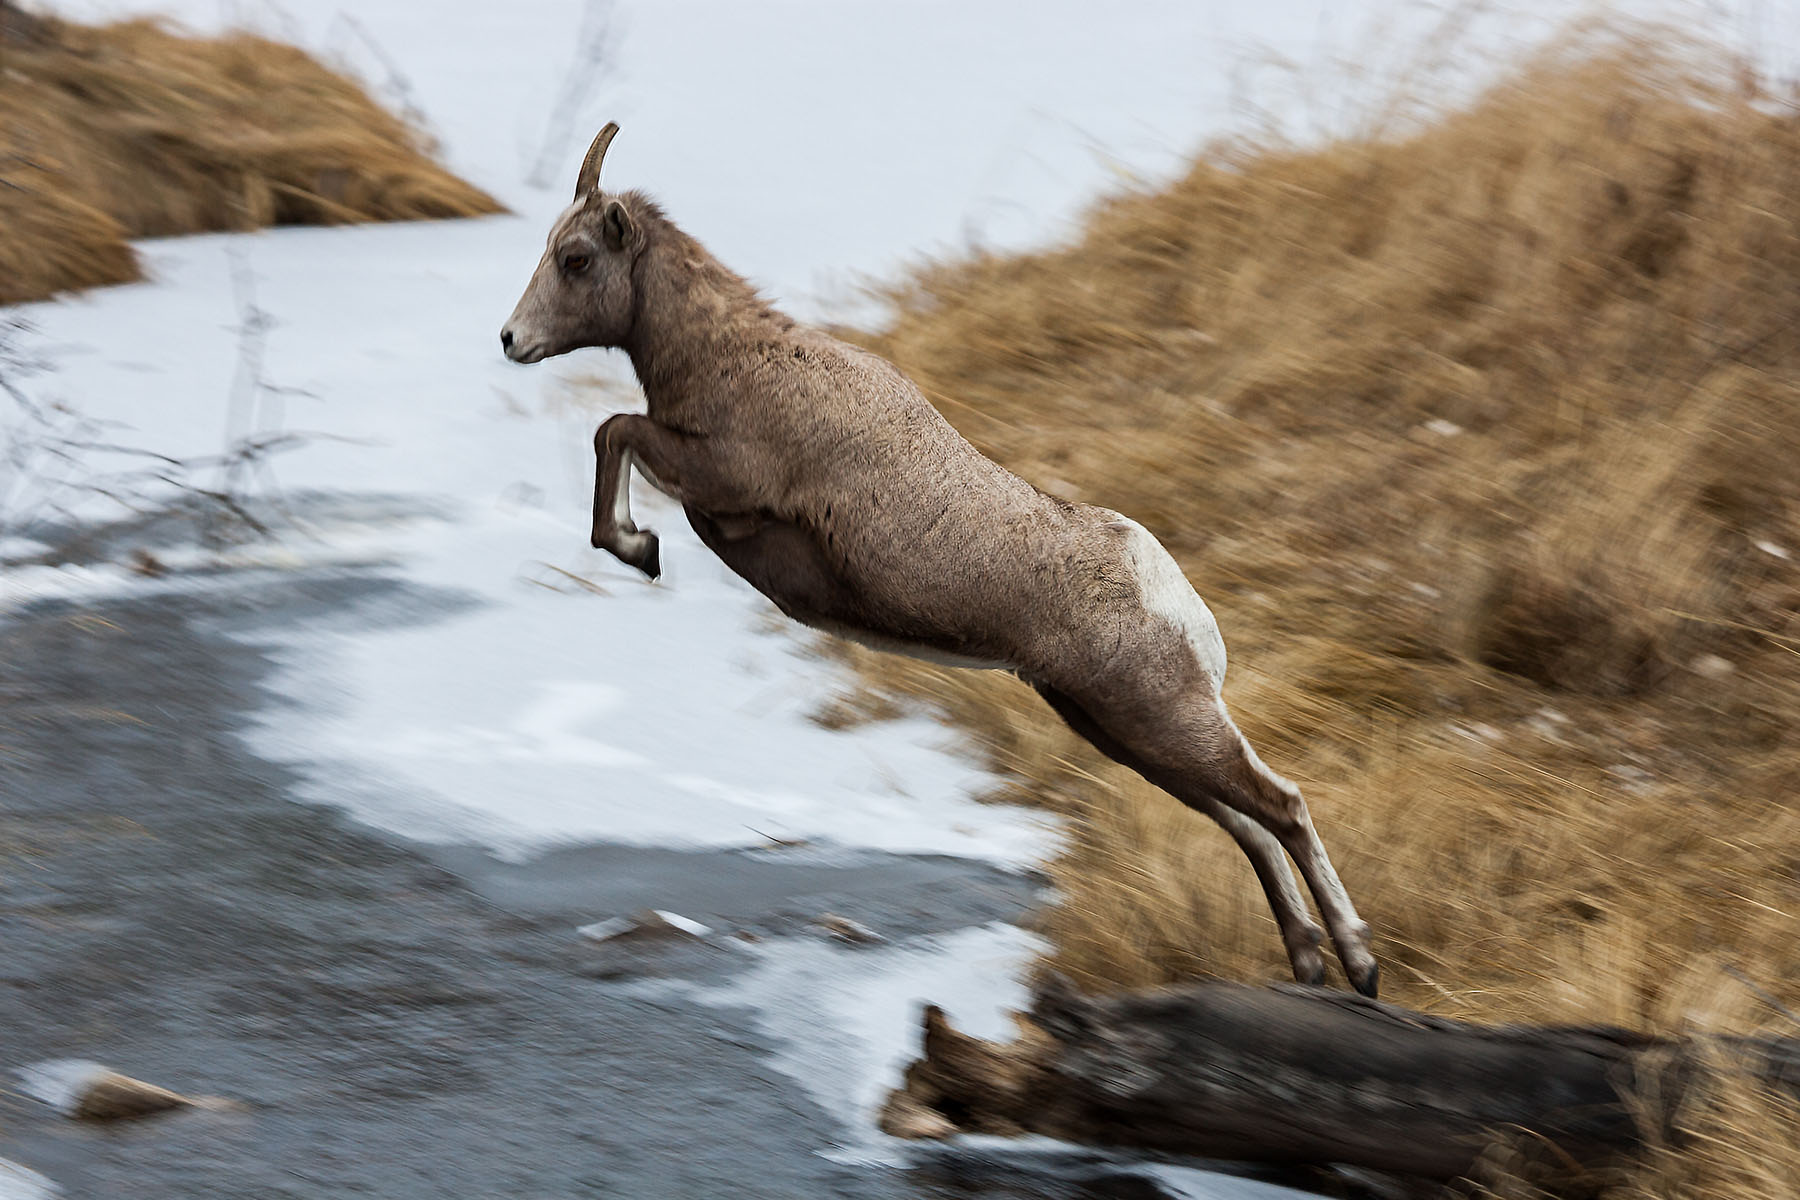 Rocky Mountain Bighorn ewe leaping a creek, Custer State Park, December 2009.  Click for next photo.